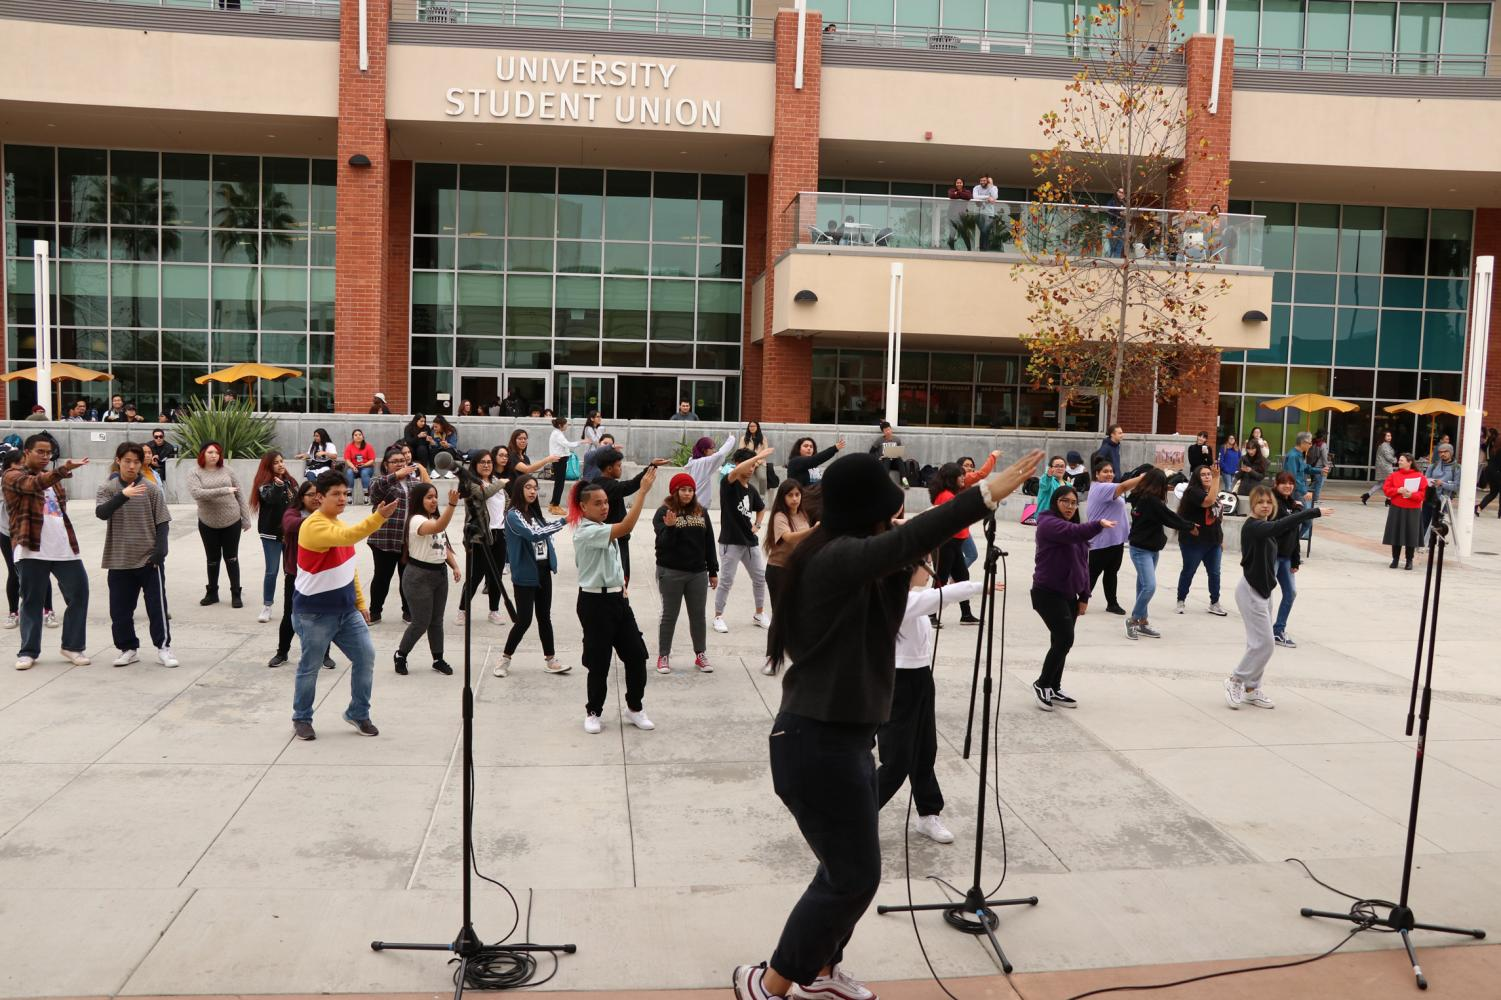 Step-by-step dance lessons are taught to those attending the K-pop dance workshop on campus.